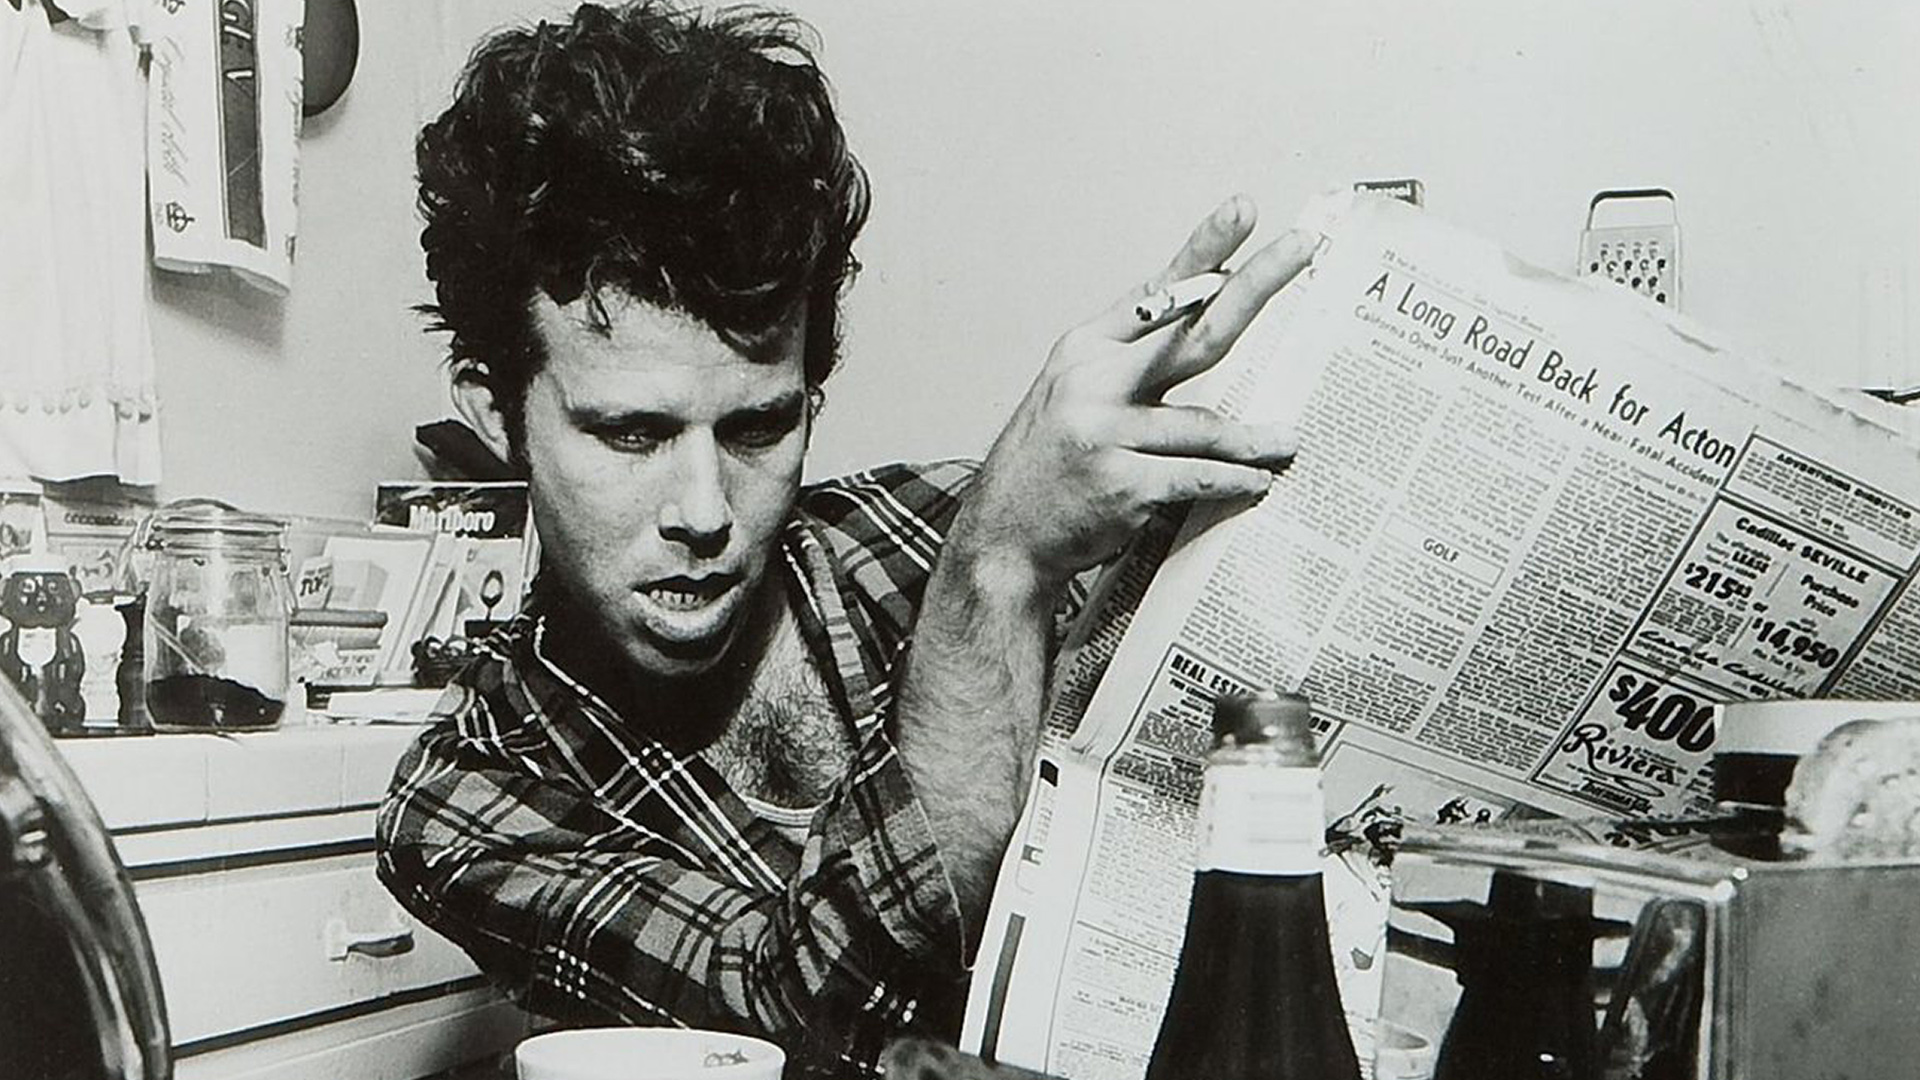 Tom Waits lost 'Rain Dogs' Commercials